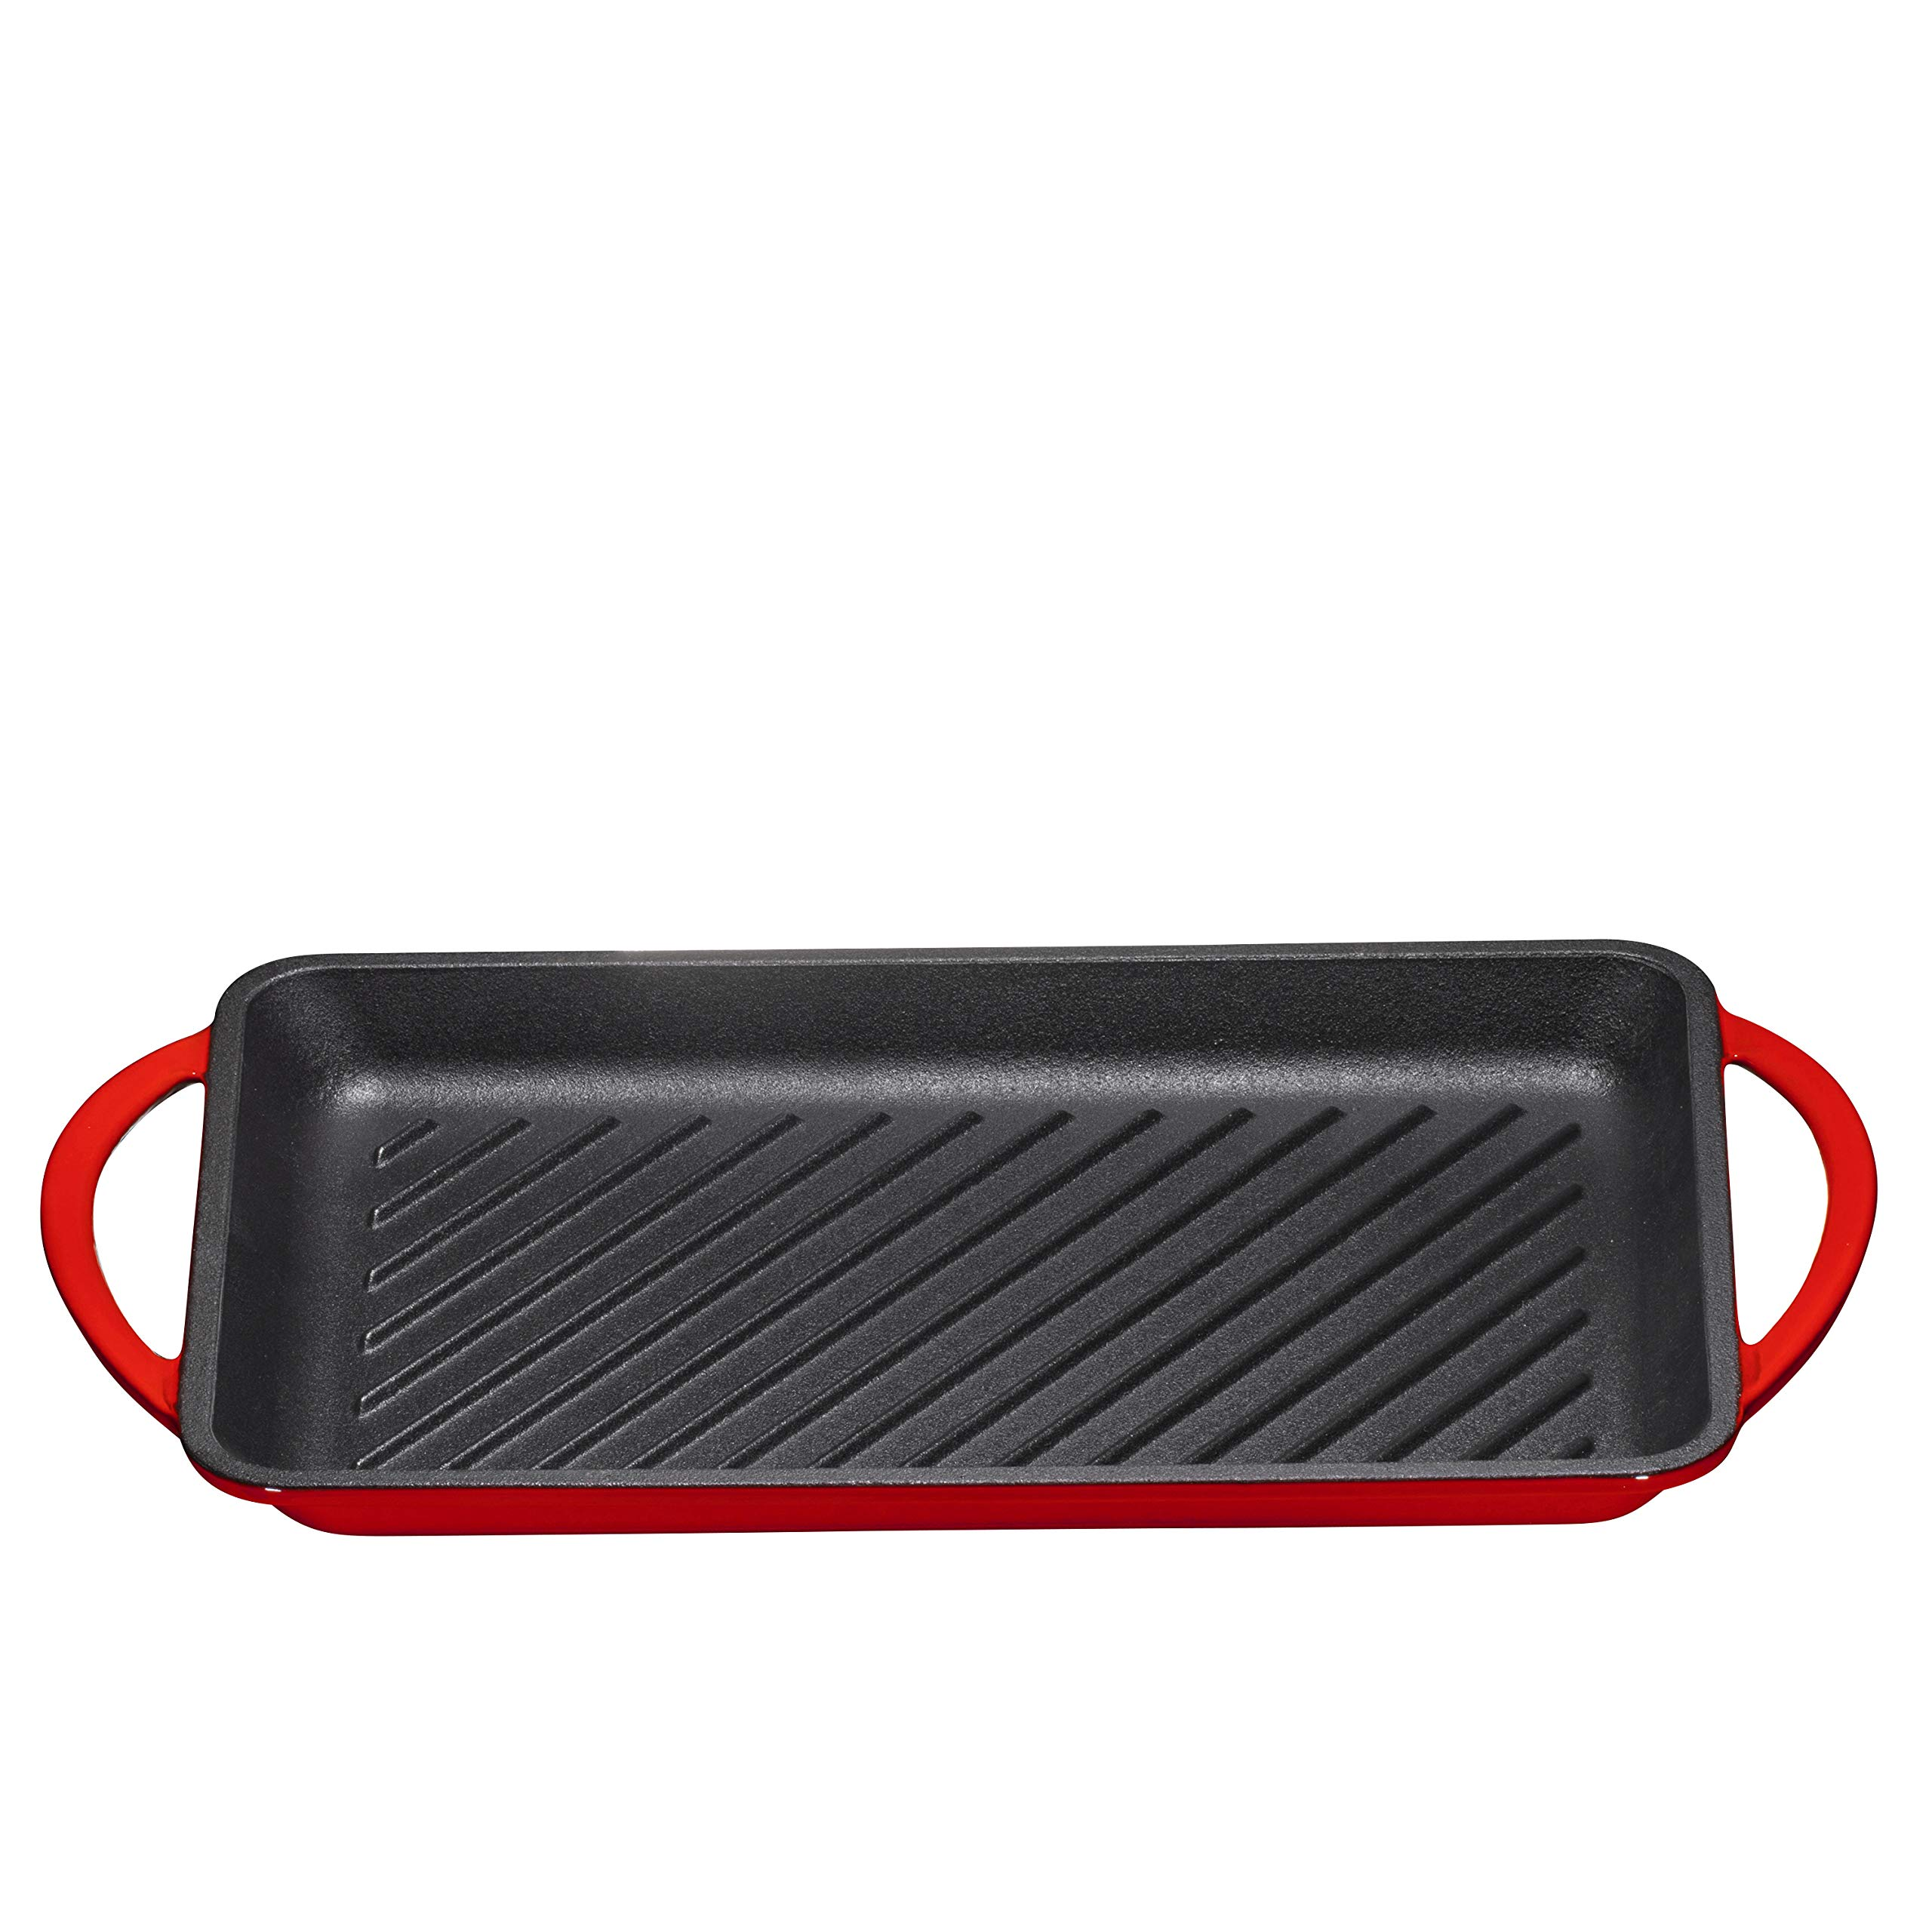 Enameled Cast-Iron Rectangular Grill Pan, Loop Handles, Fire Red, 9.5'' x 13.5'' by Bruntmor (Image #5)